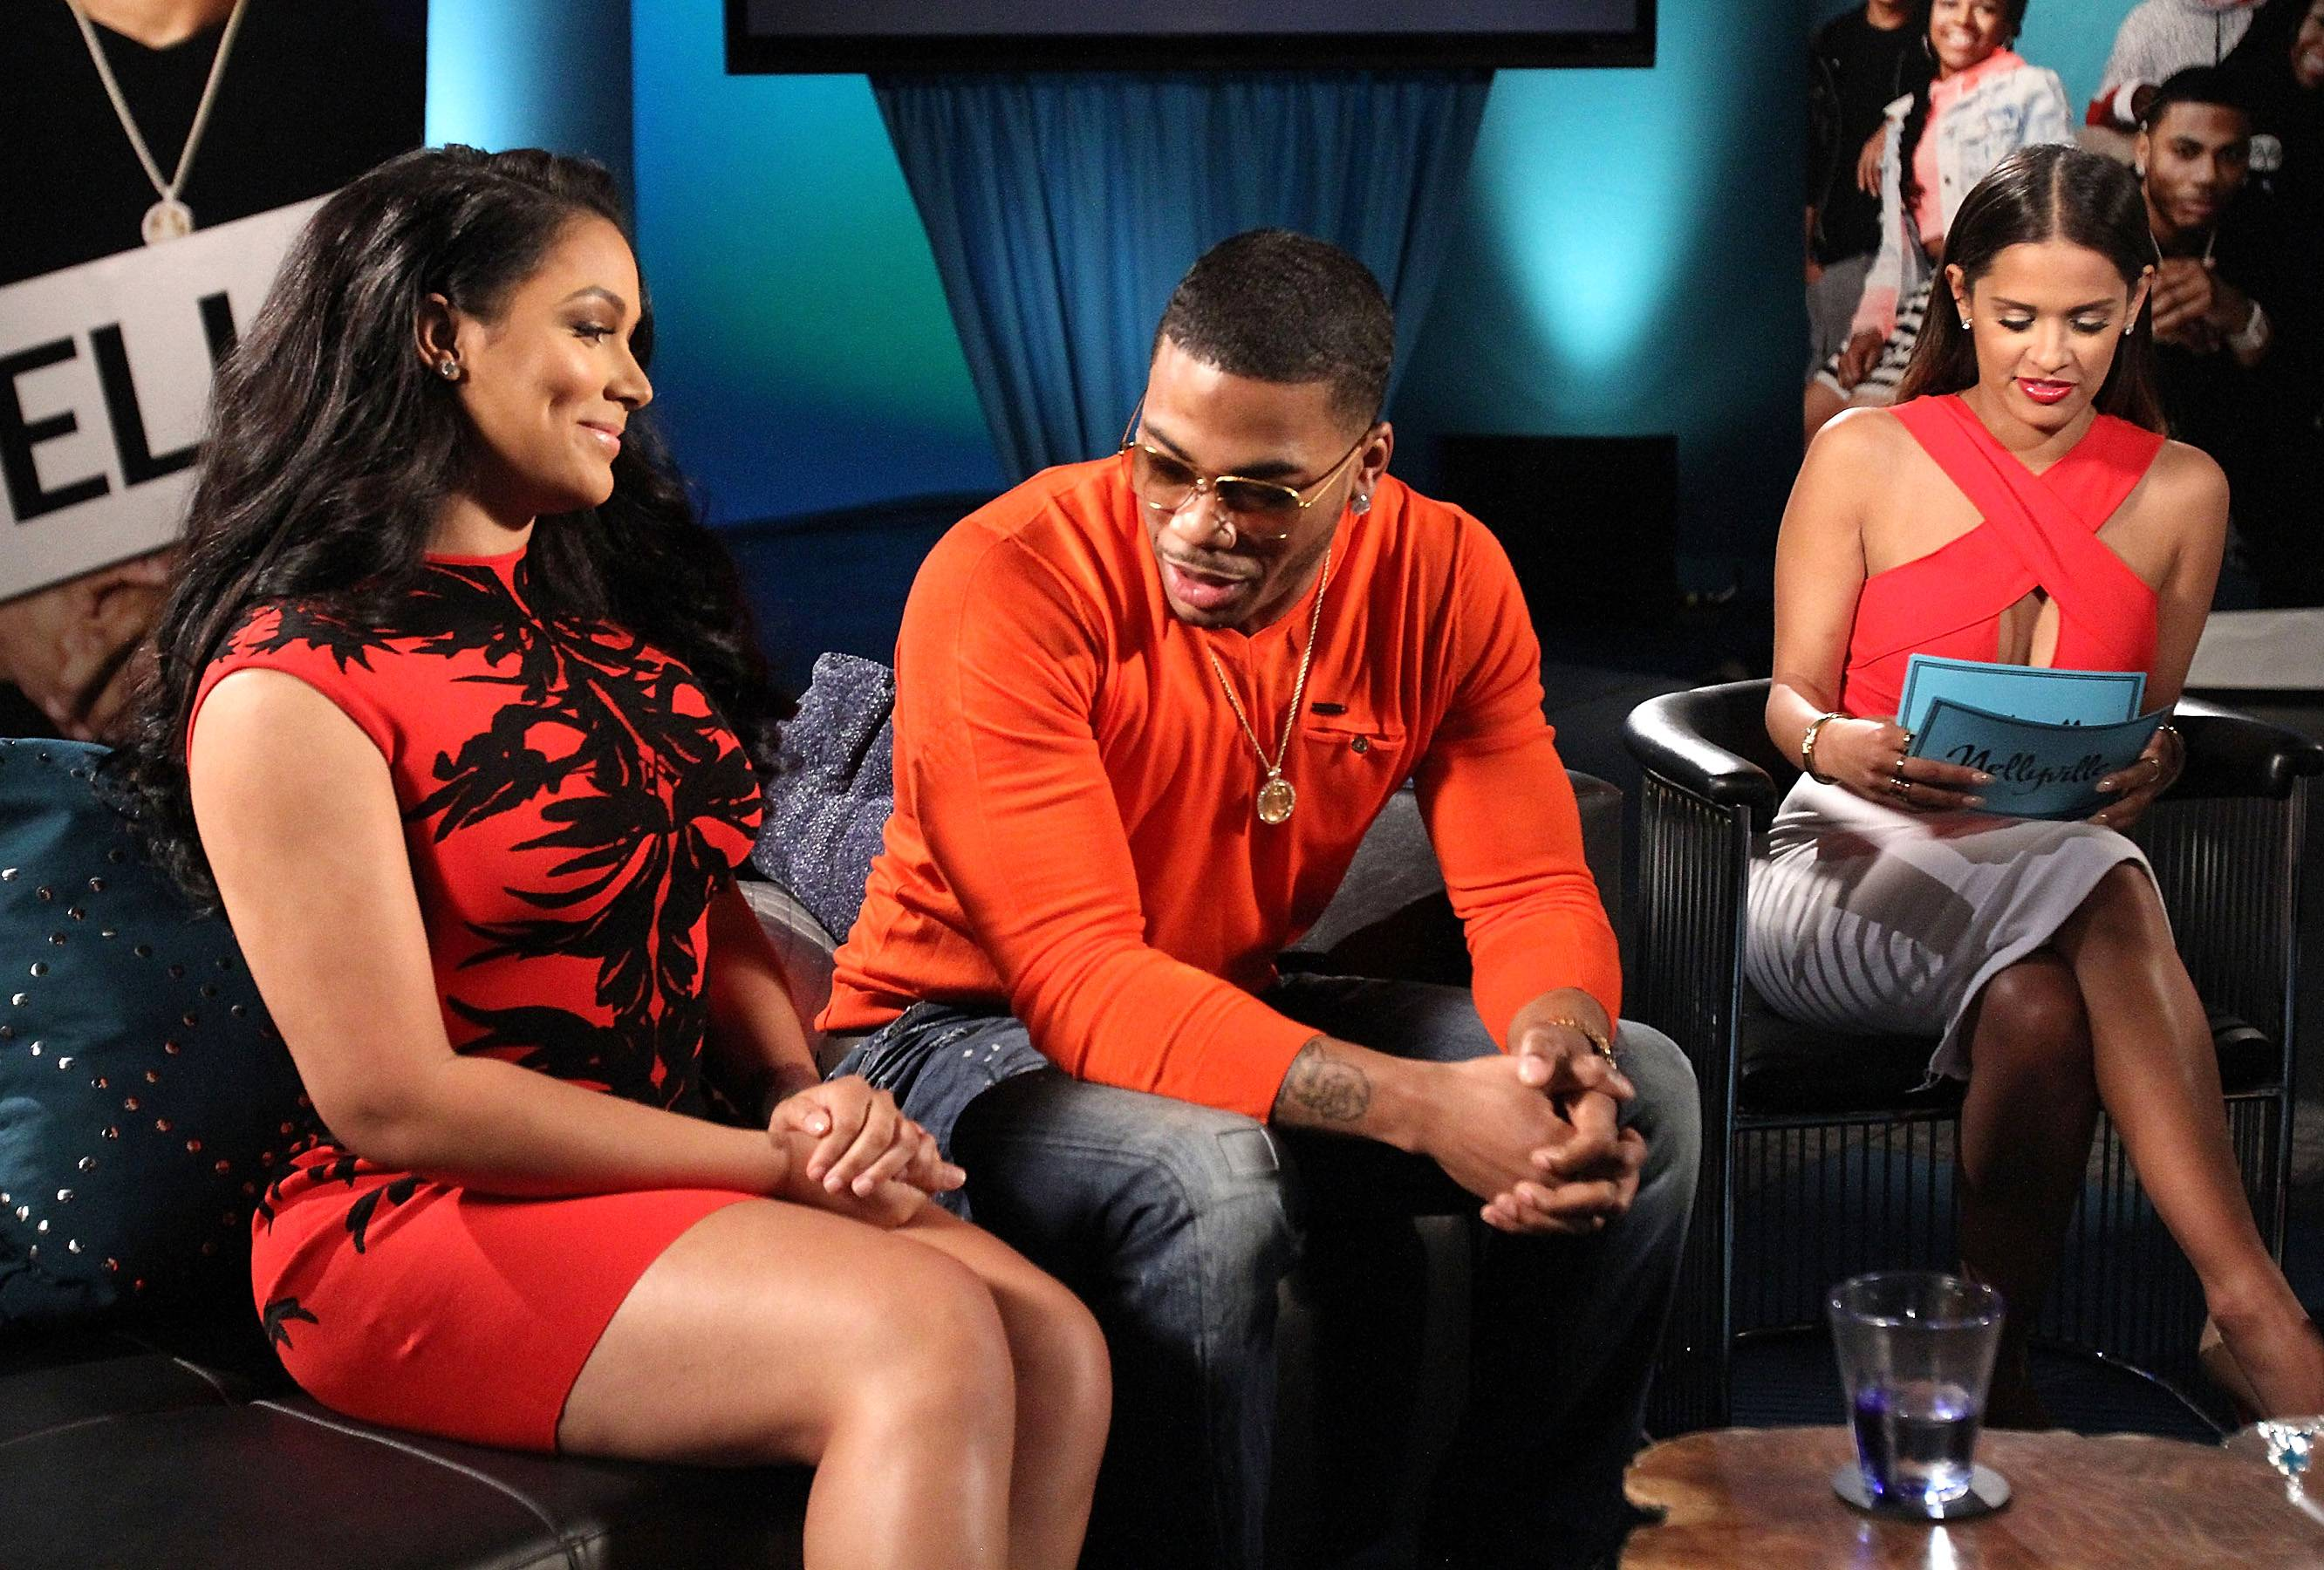 That Thang! - Nelly can't focus while Miss Jackson's around. (Photo: Maury Phillips/WireImage)